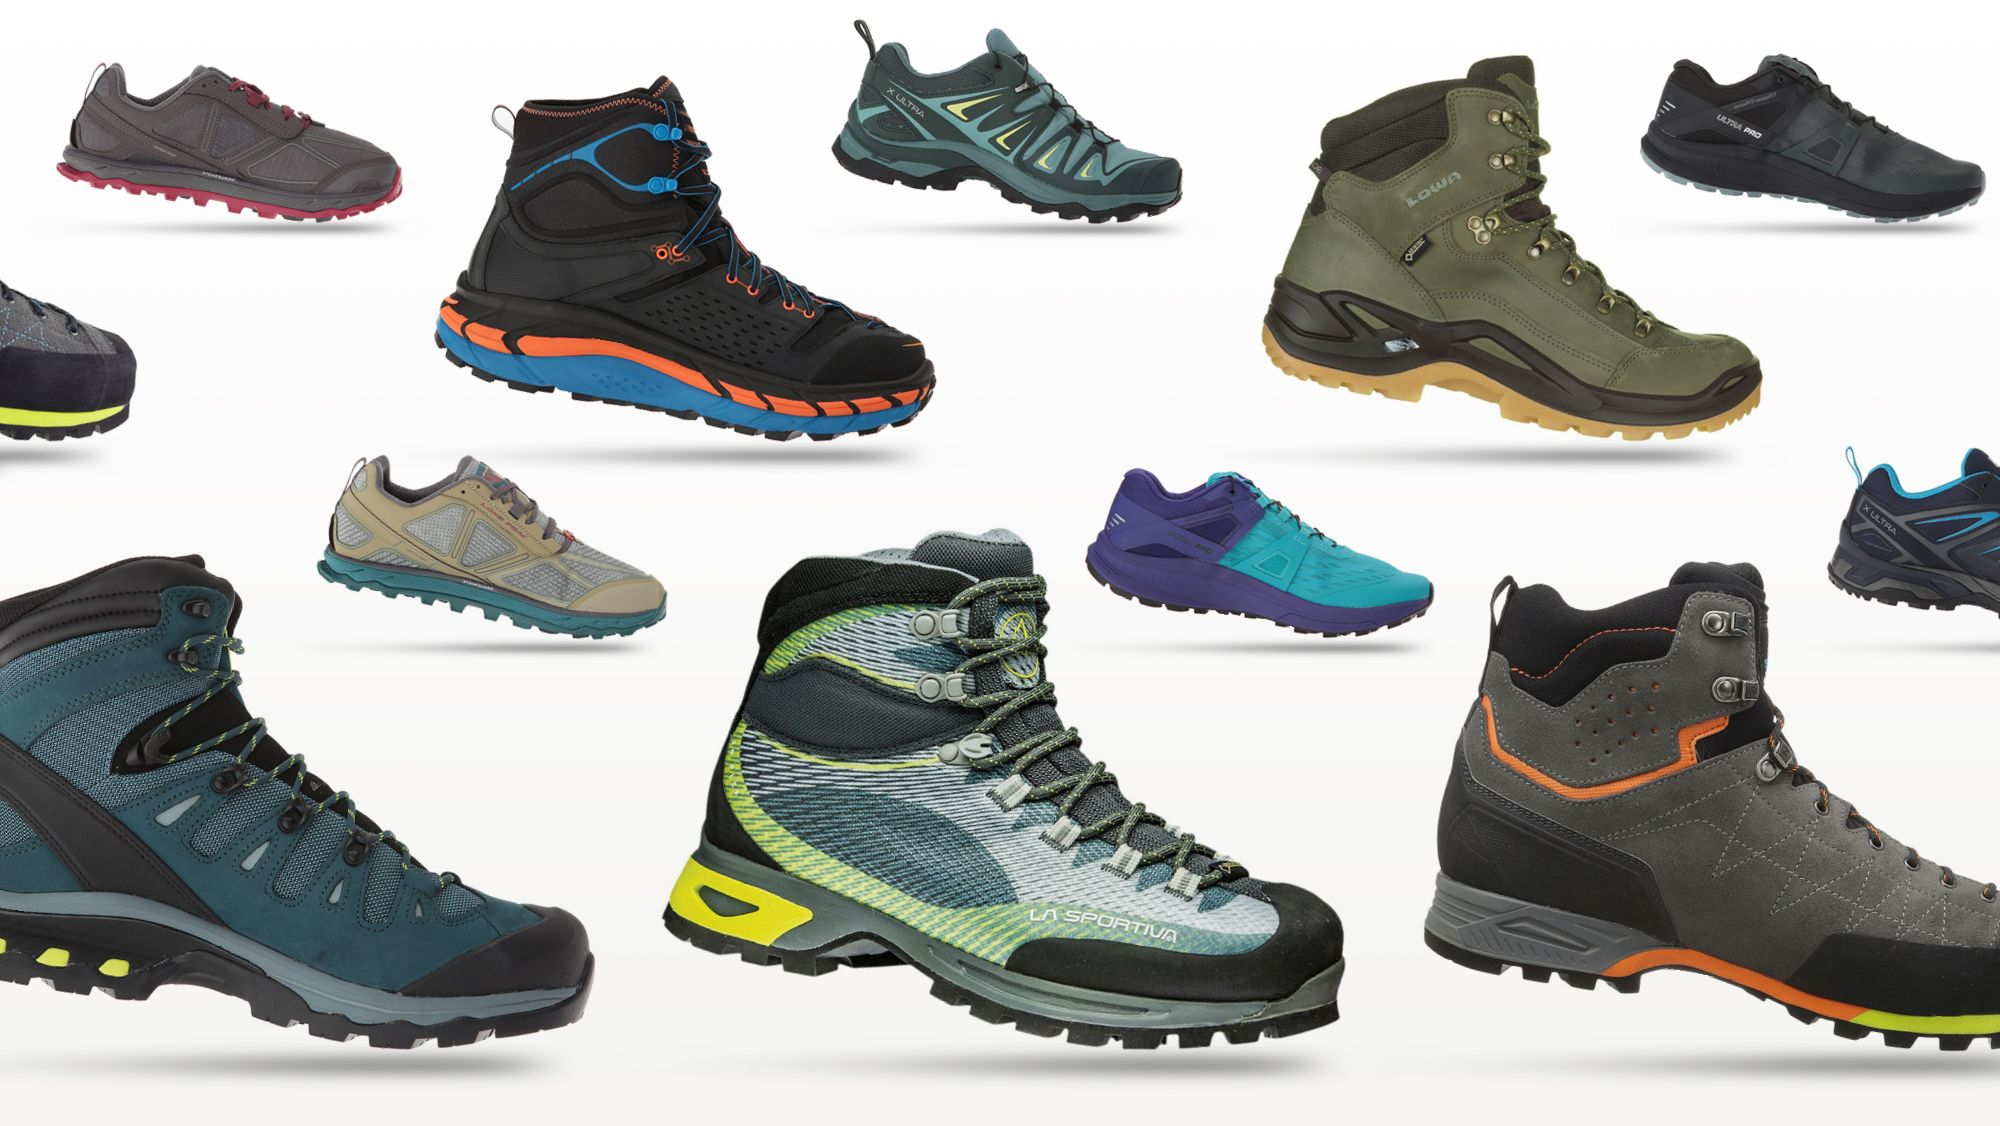 The 10 Best Hiking Boots and Trail-Running Shoes This Year